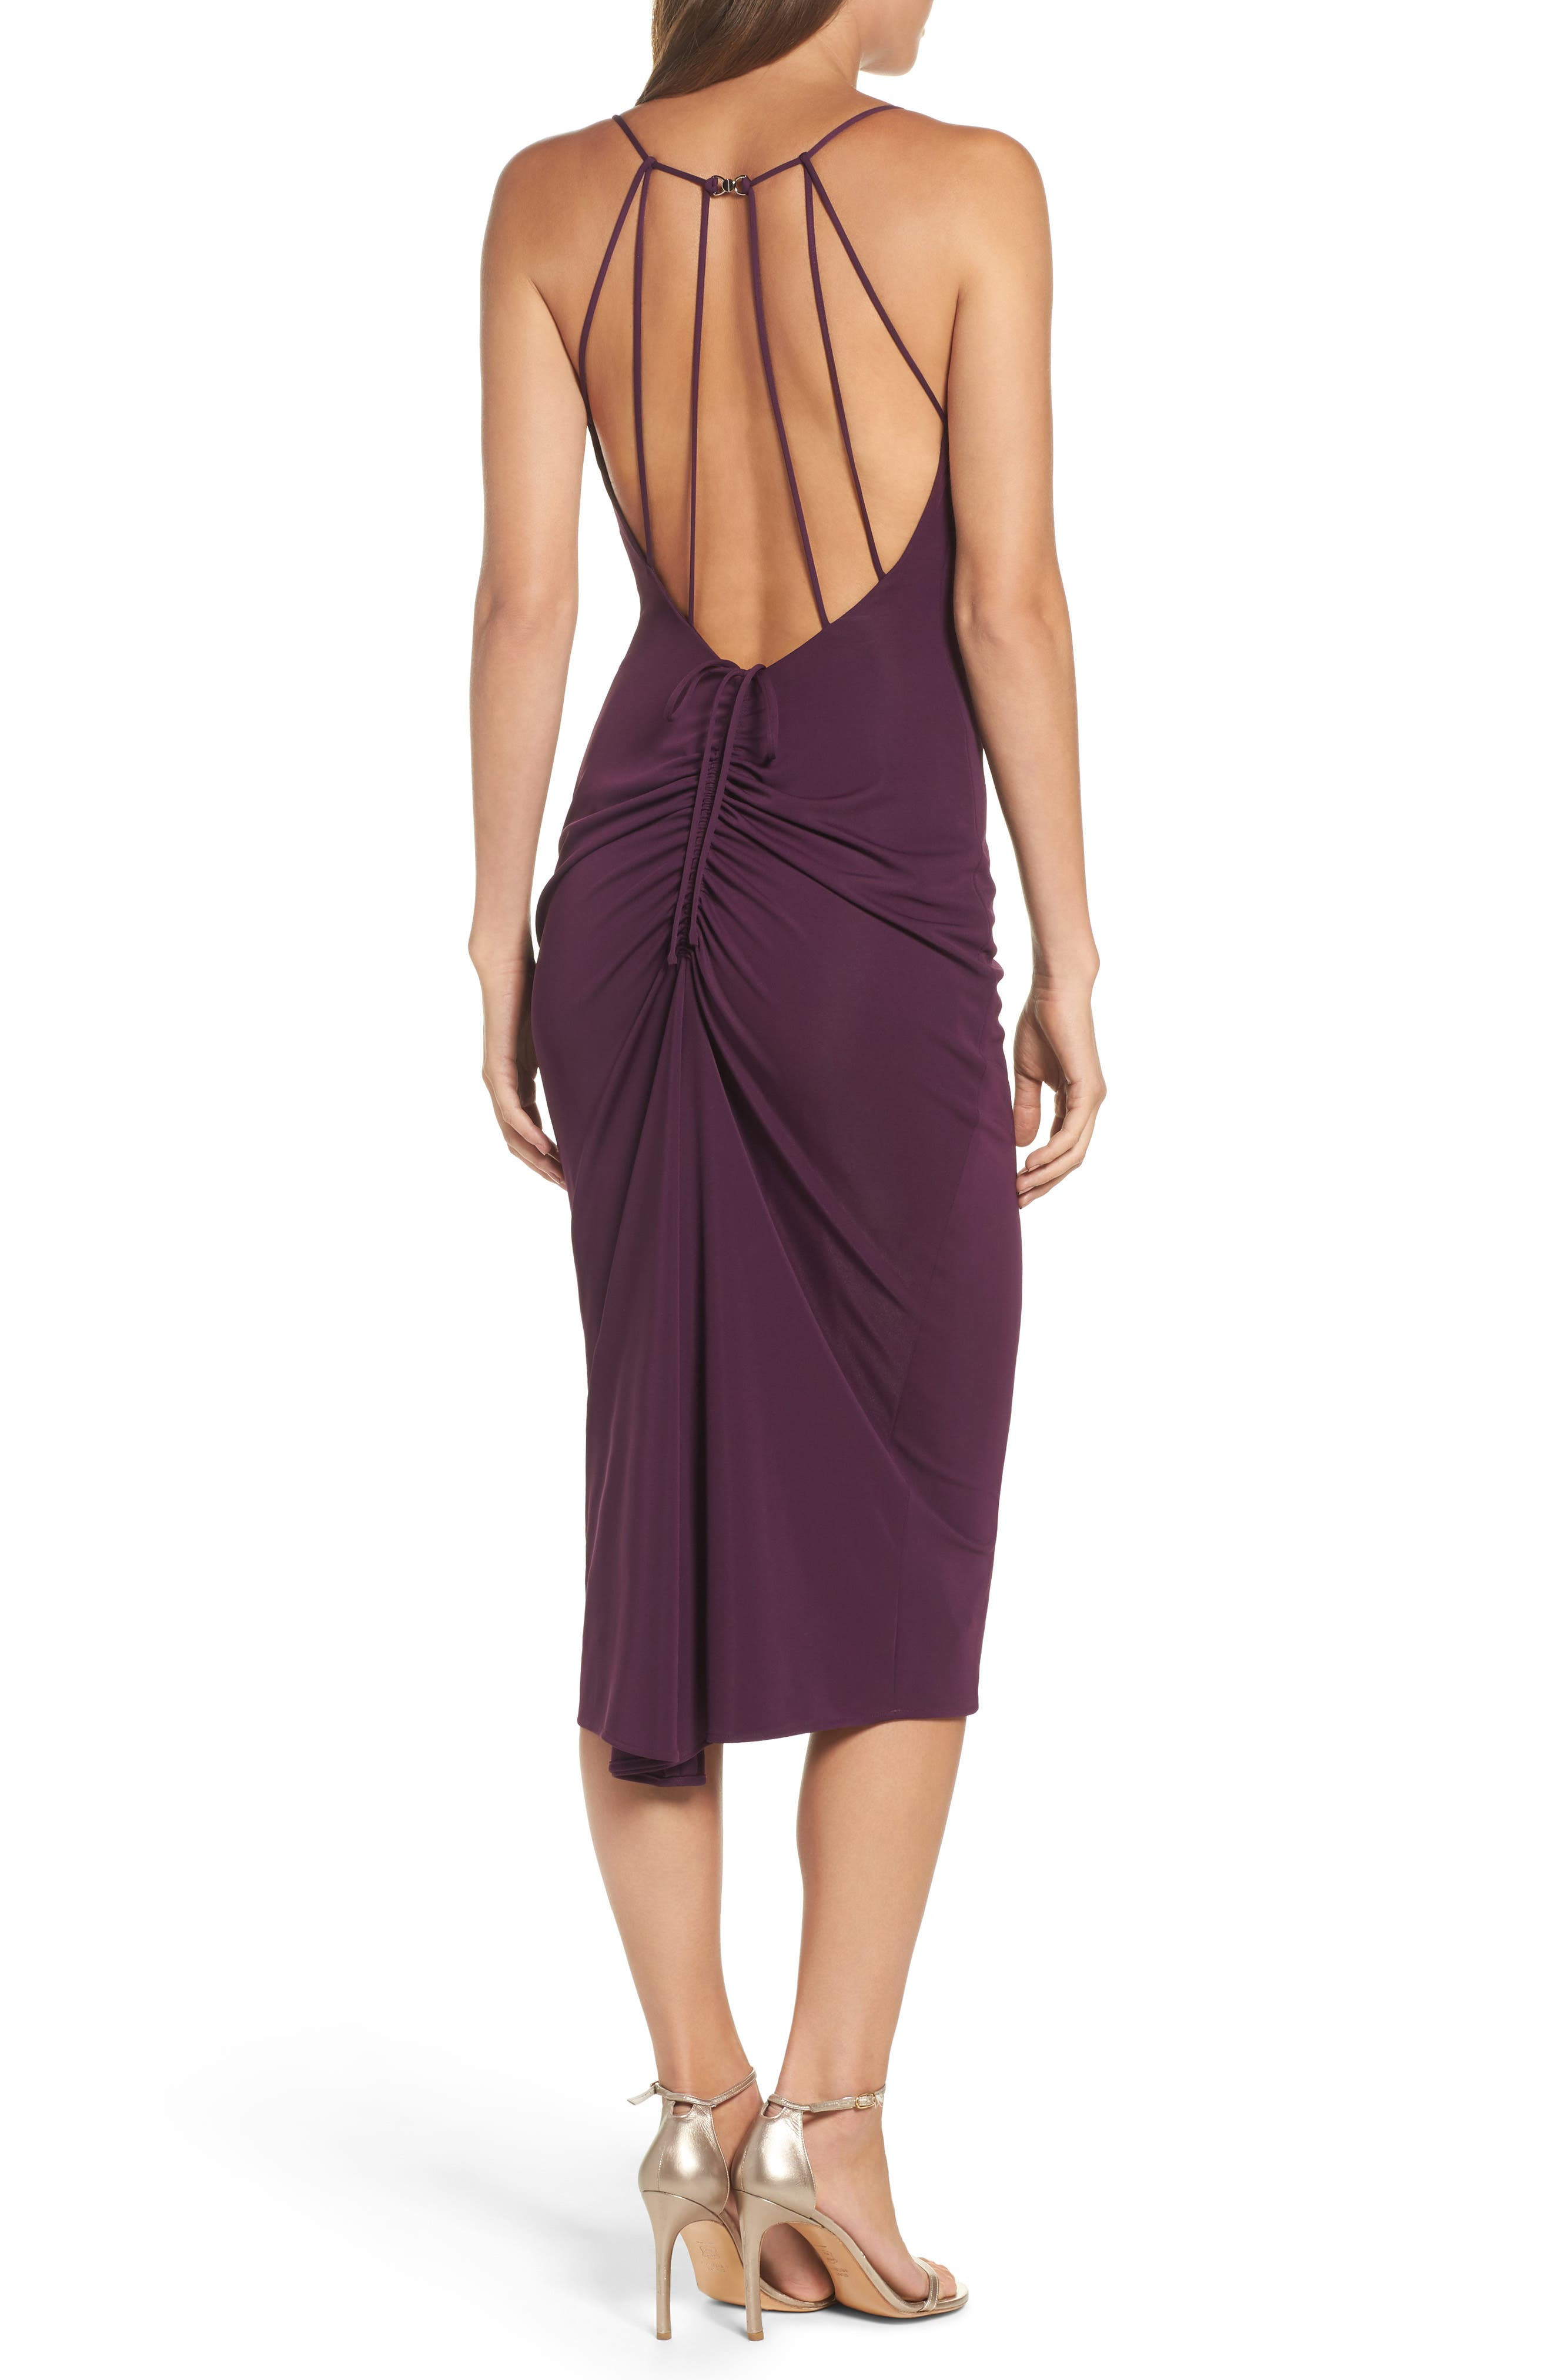 Cowl Neck Midi Dress,                             Alternate thumbnail 2, color,                             935